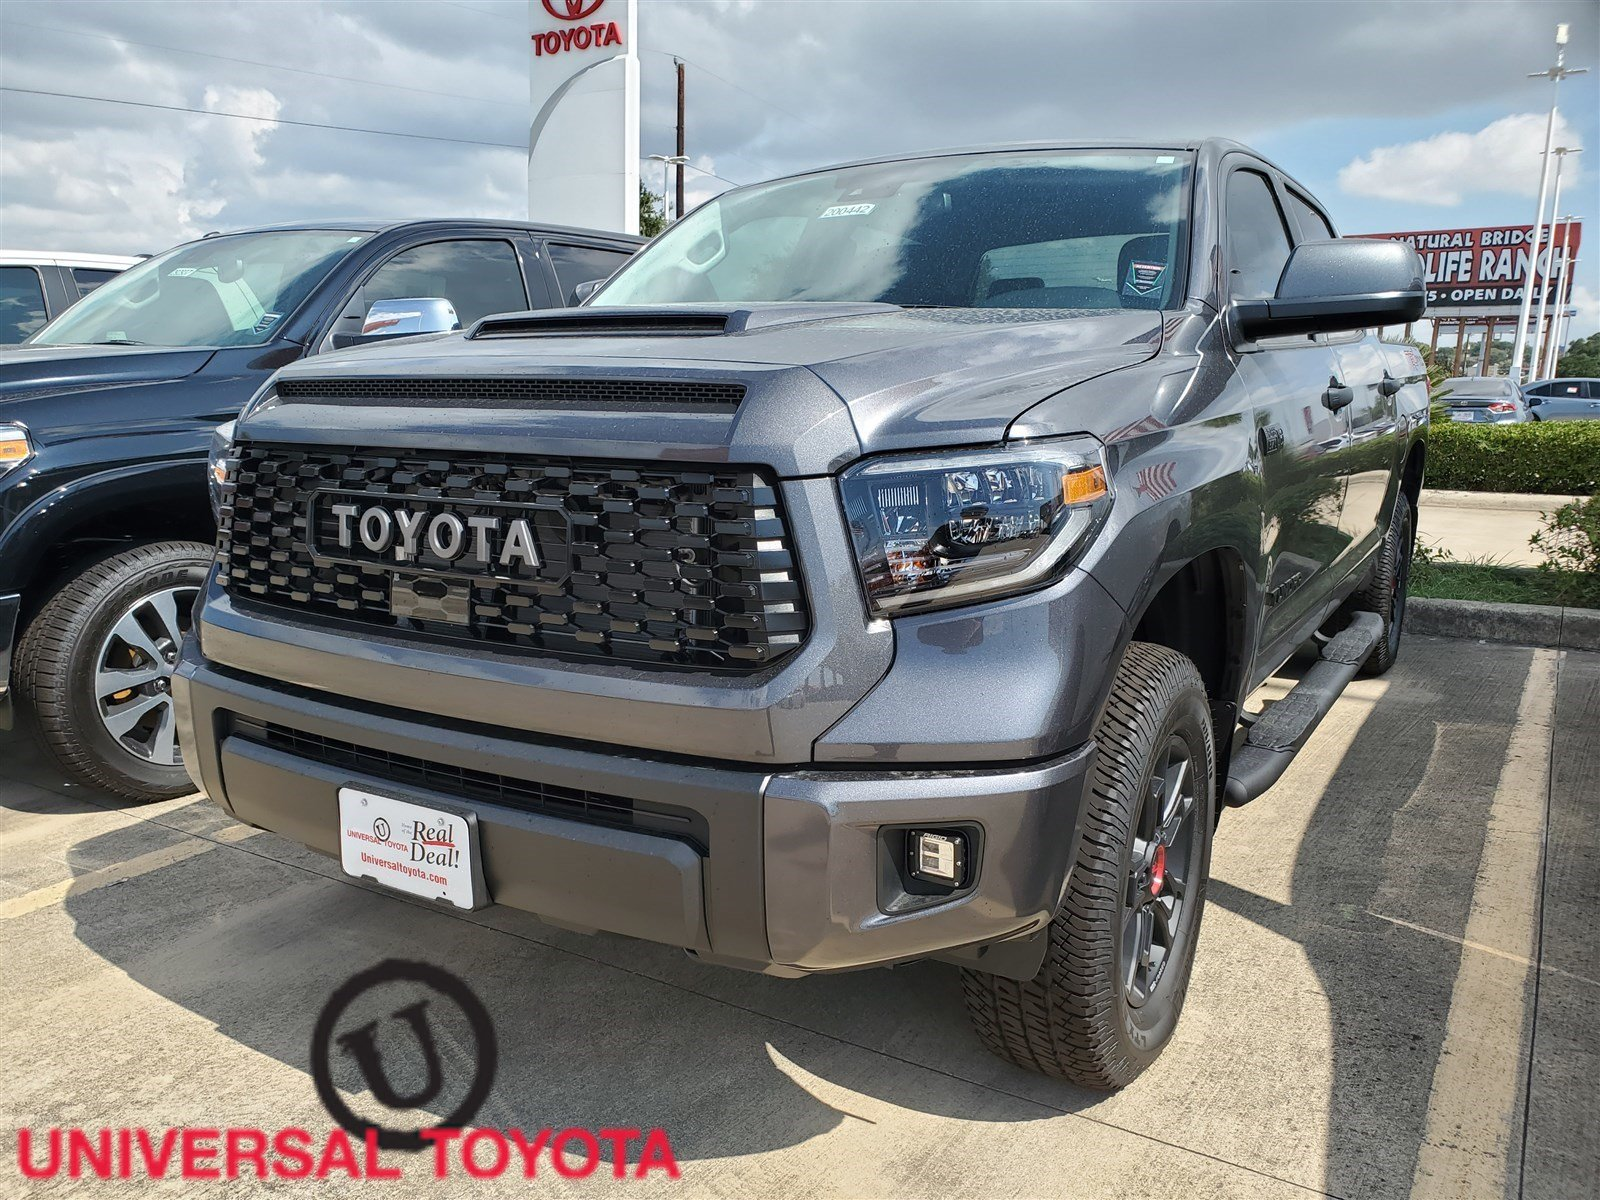 Tundra Trd Pro >> 2020 Tundra Trd Pro 2020 Toyota Tundra Trd Pro Review